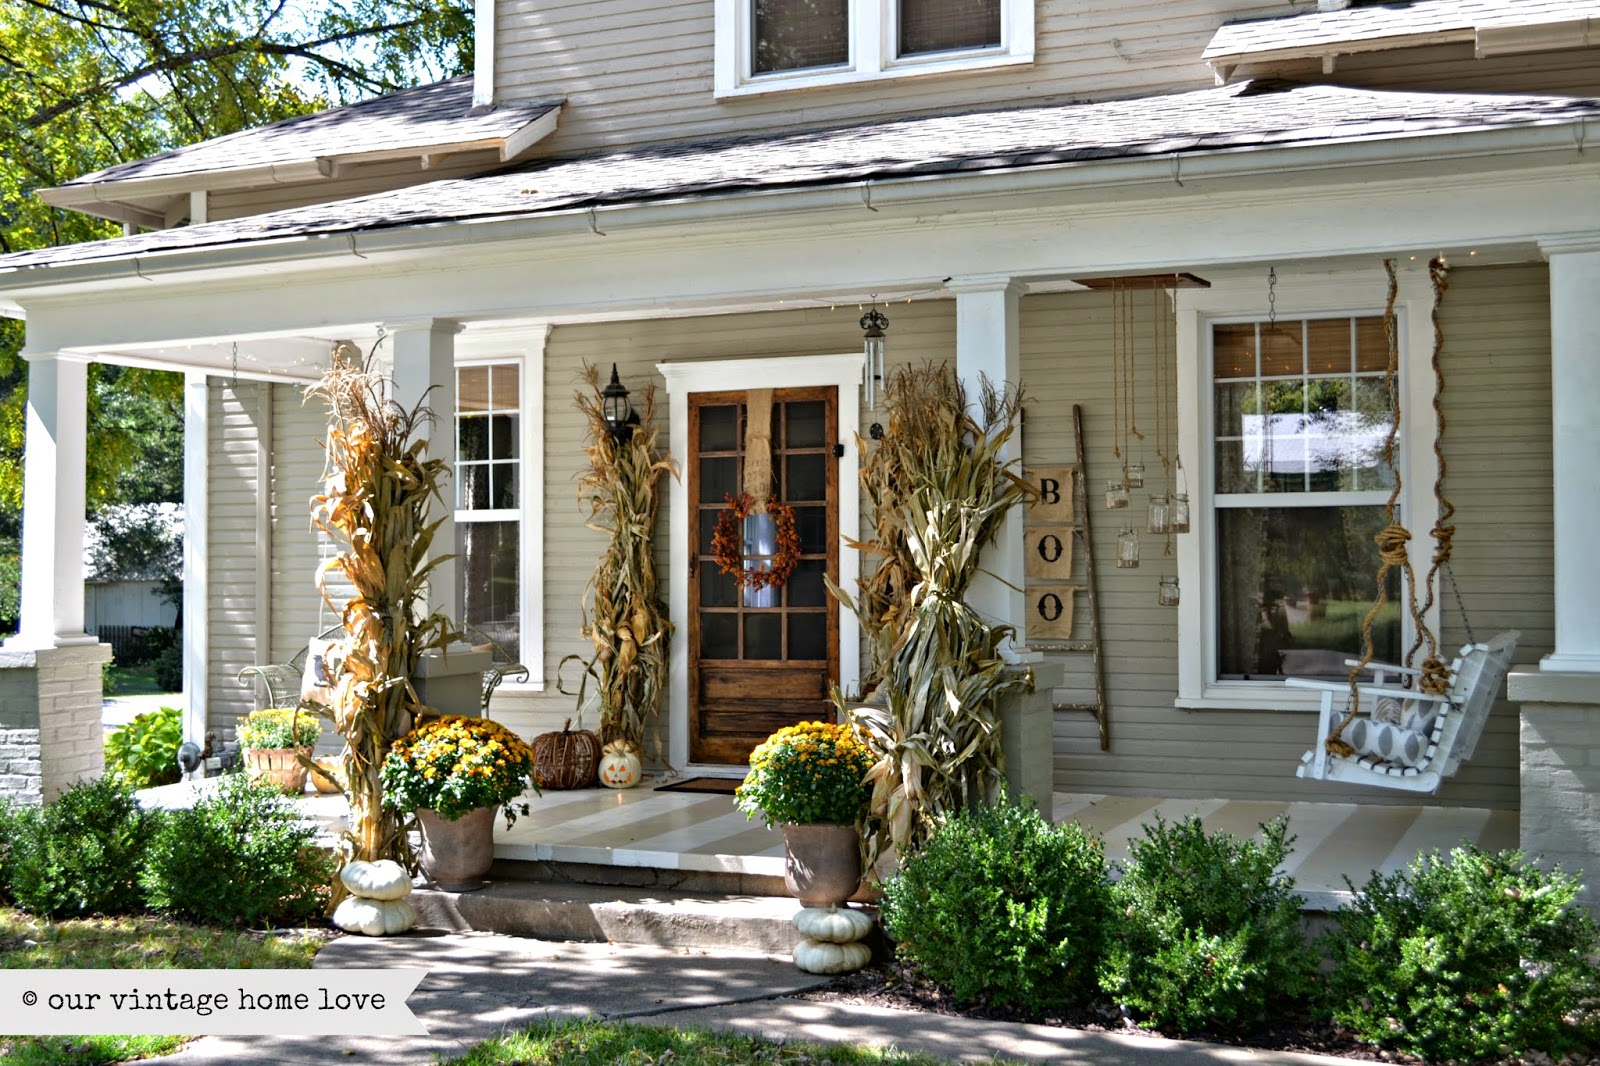 vintage home love: Fall Porch Ideas